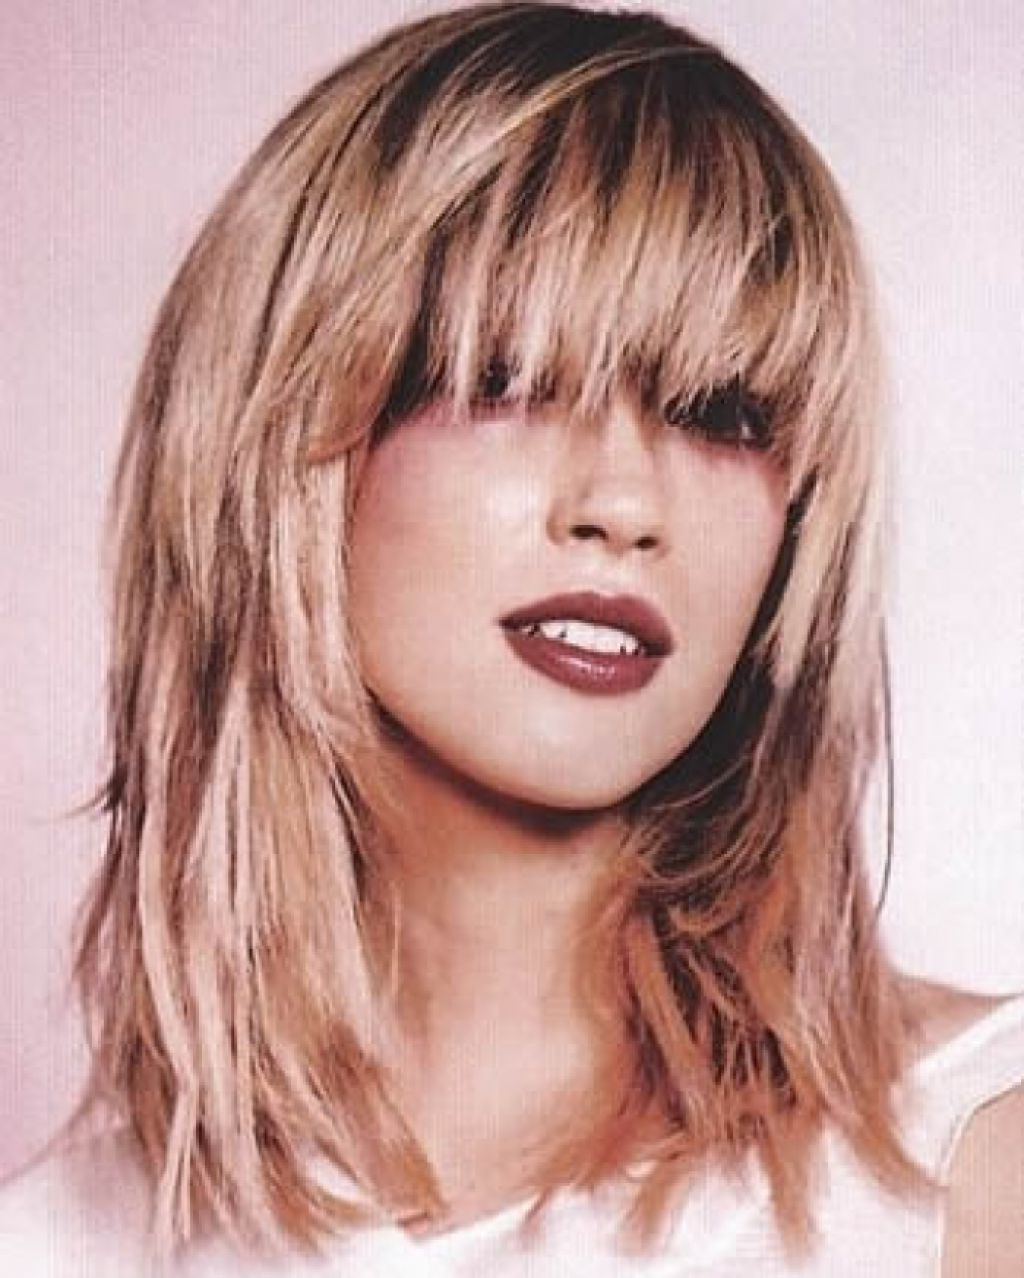 Women Hairstyle : Medium Long Layered Hairstyles Straight Inside Most Up To Date Medium Length Bob Asian Hairstyles With Long Bangs (View 18 of 20)